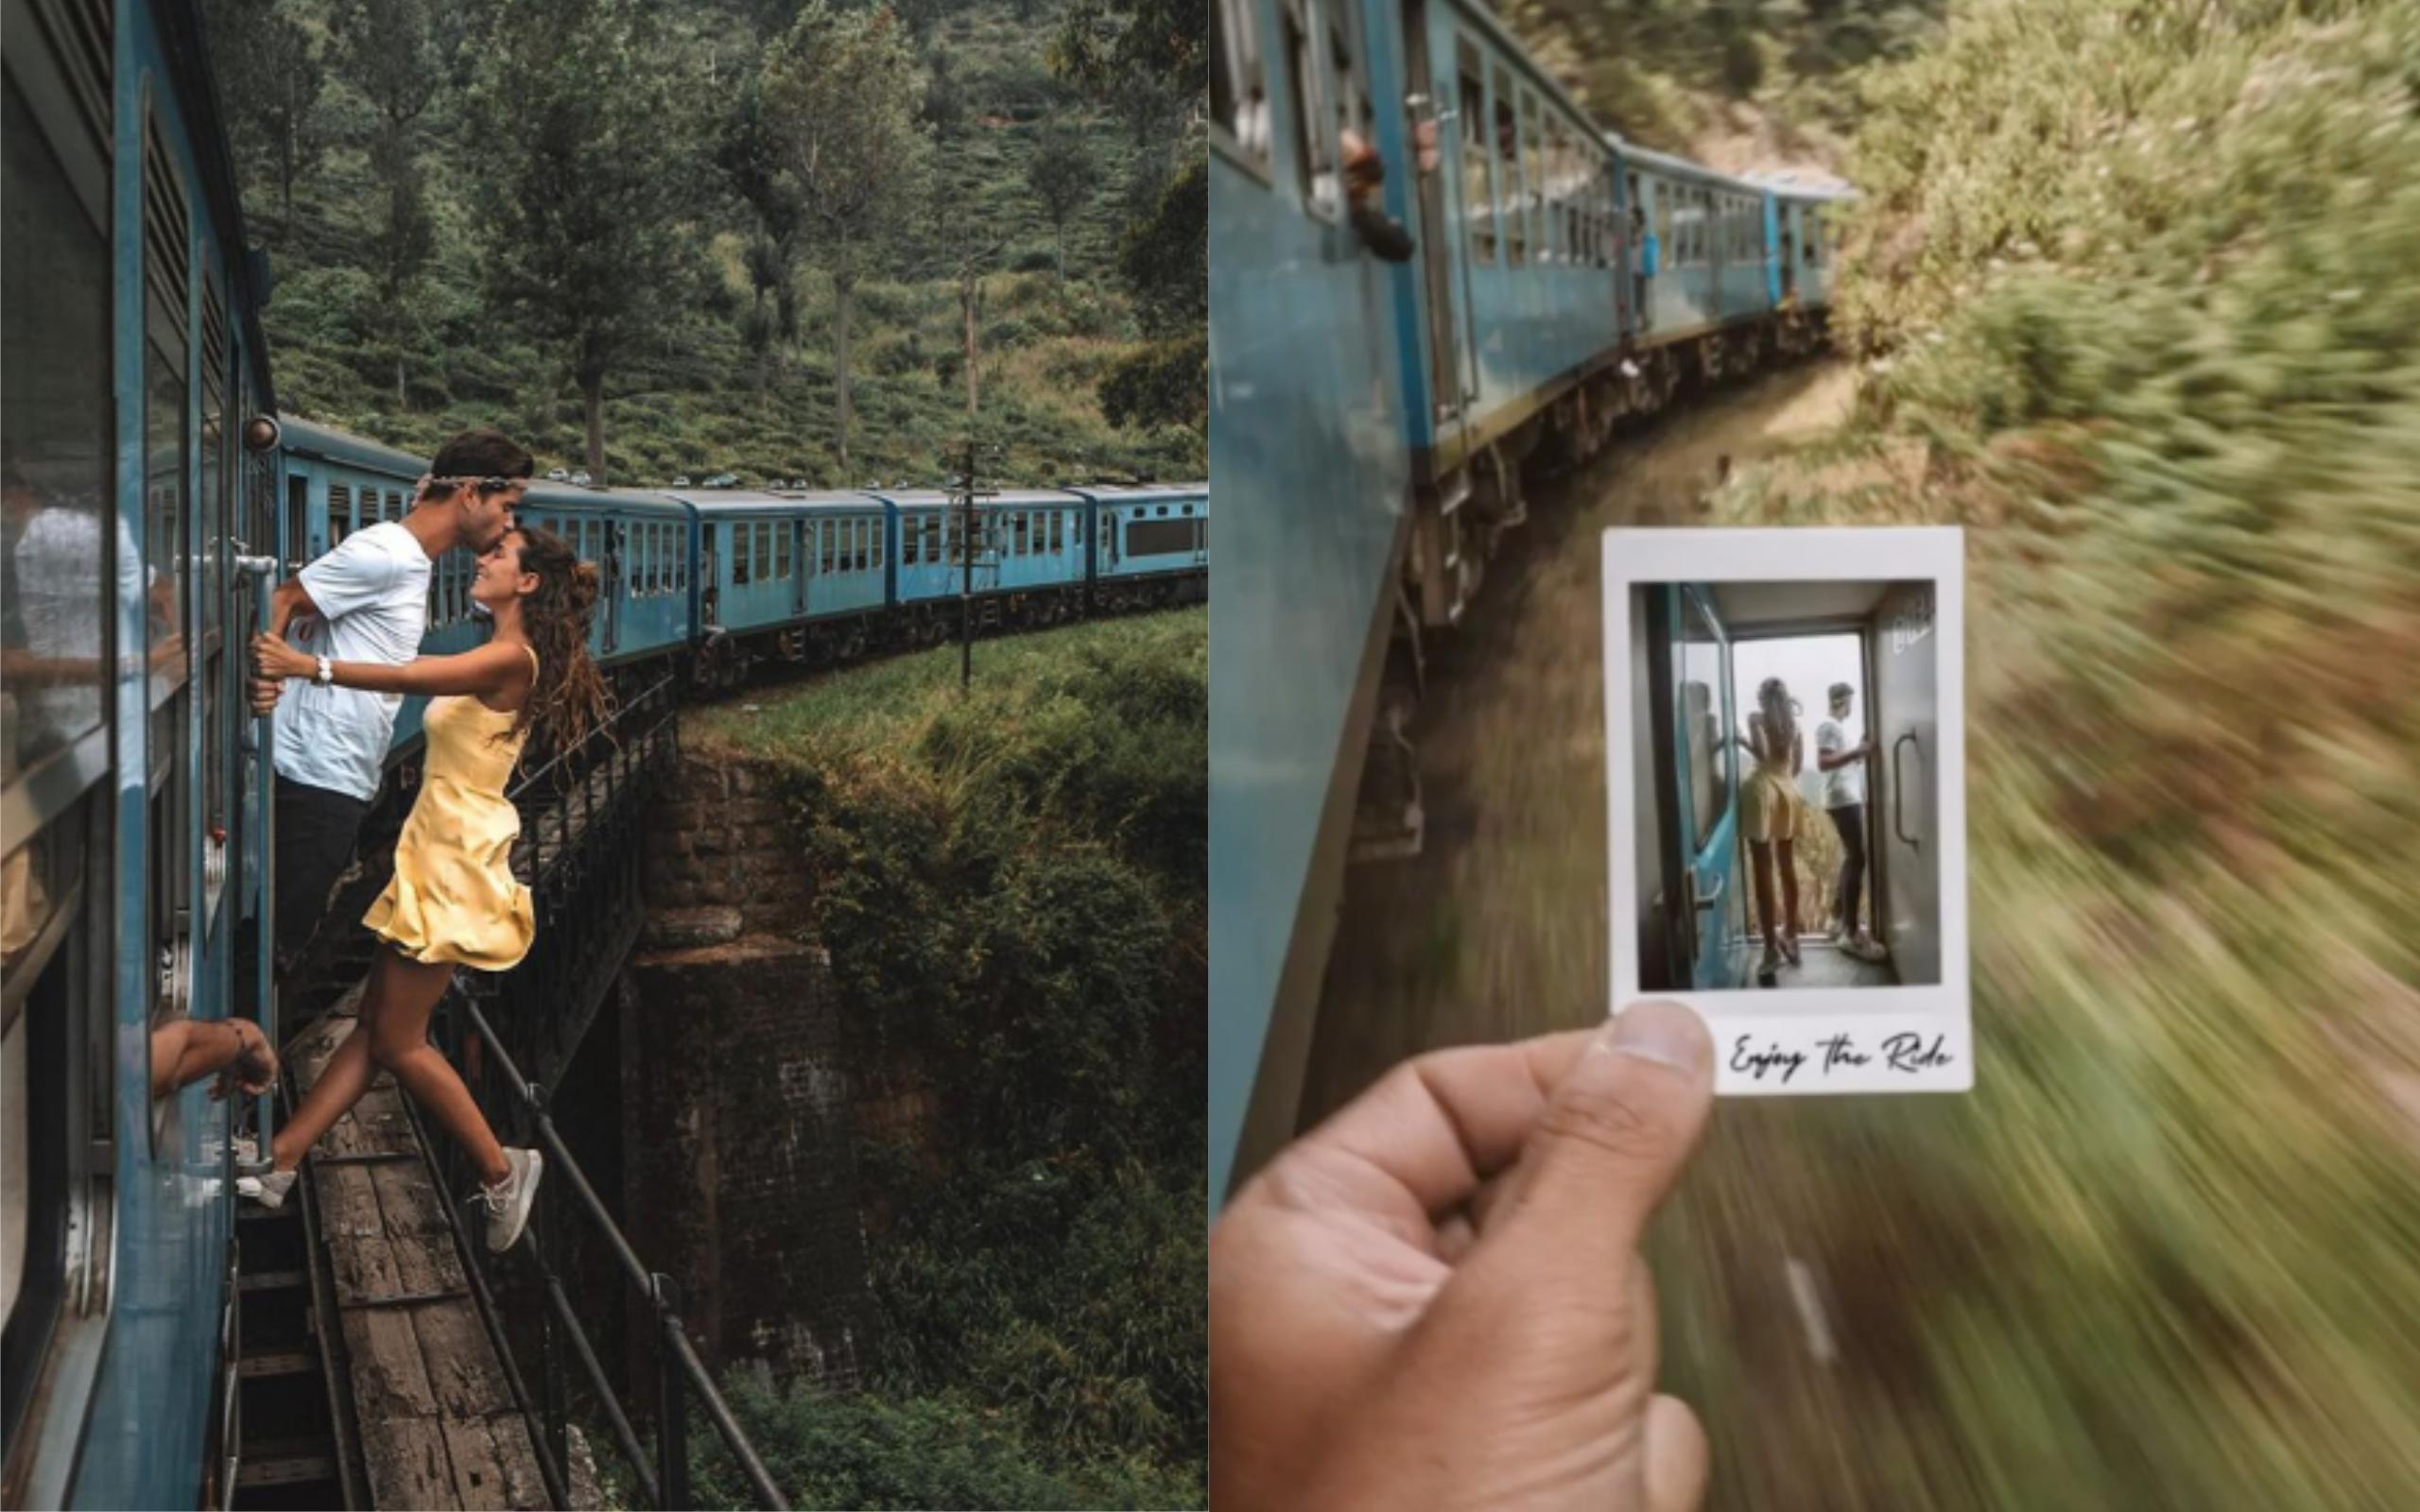 Bloggers slammed for taking pic while hanging off train